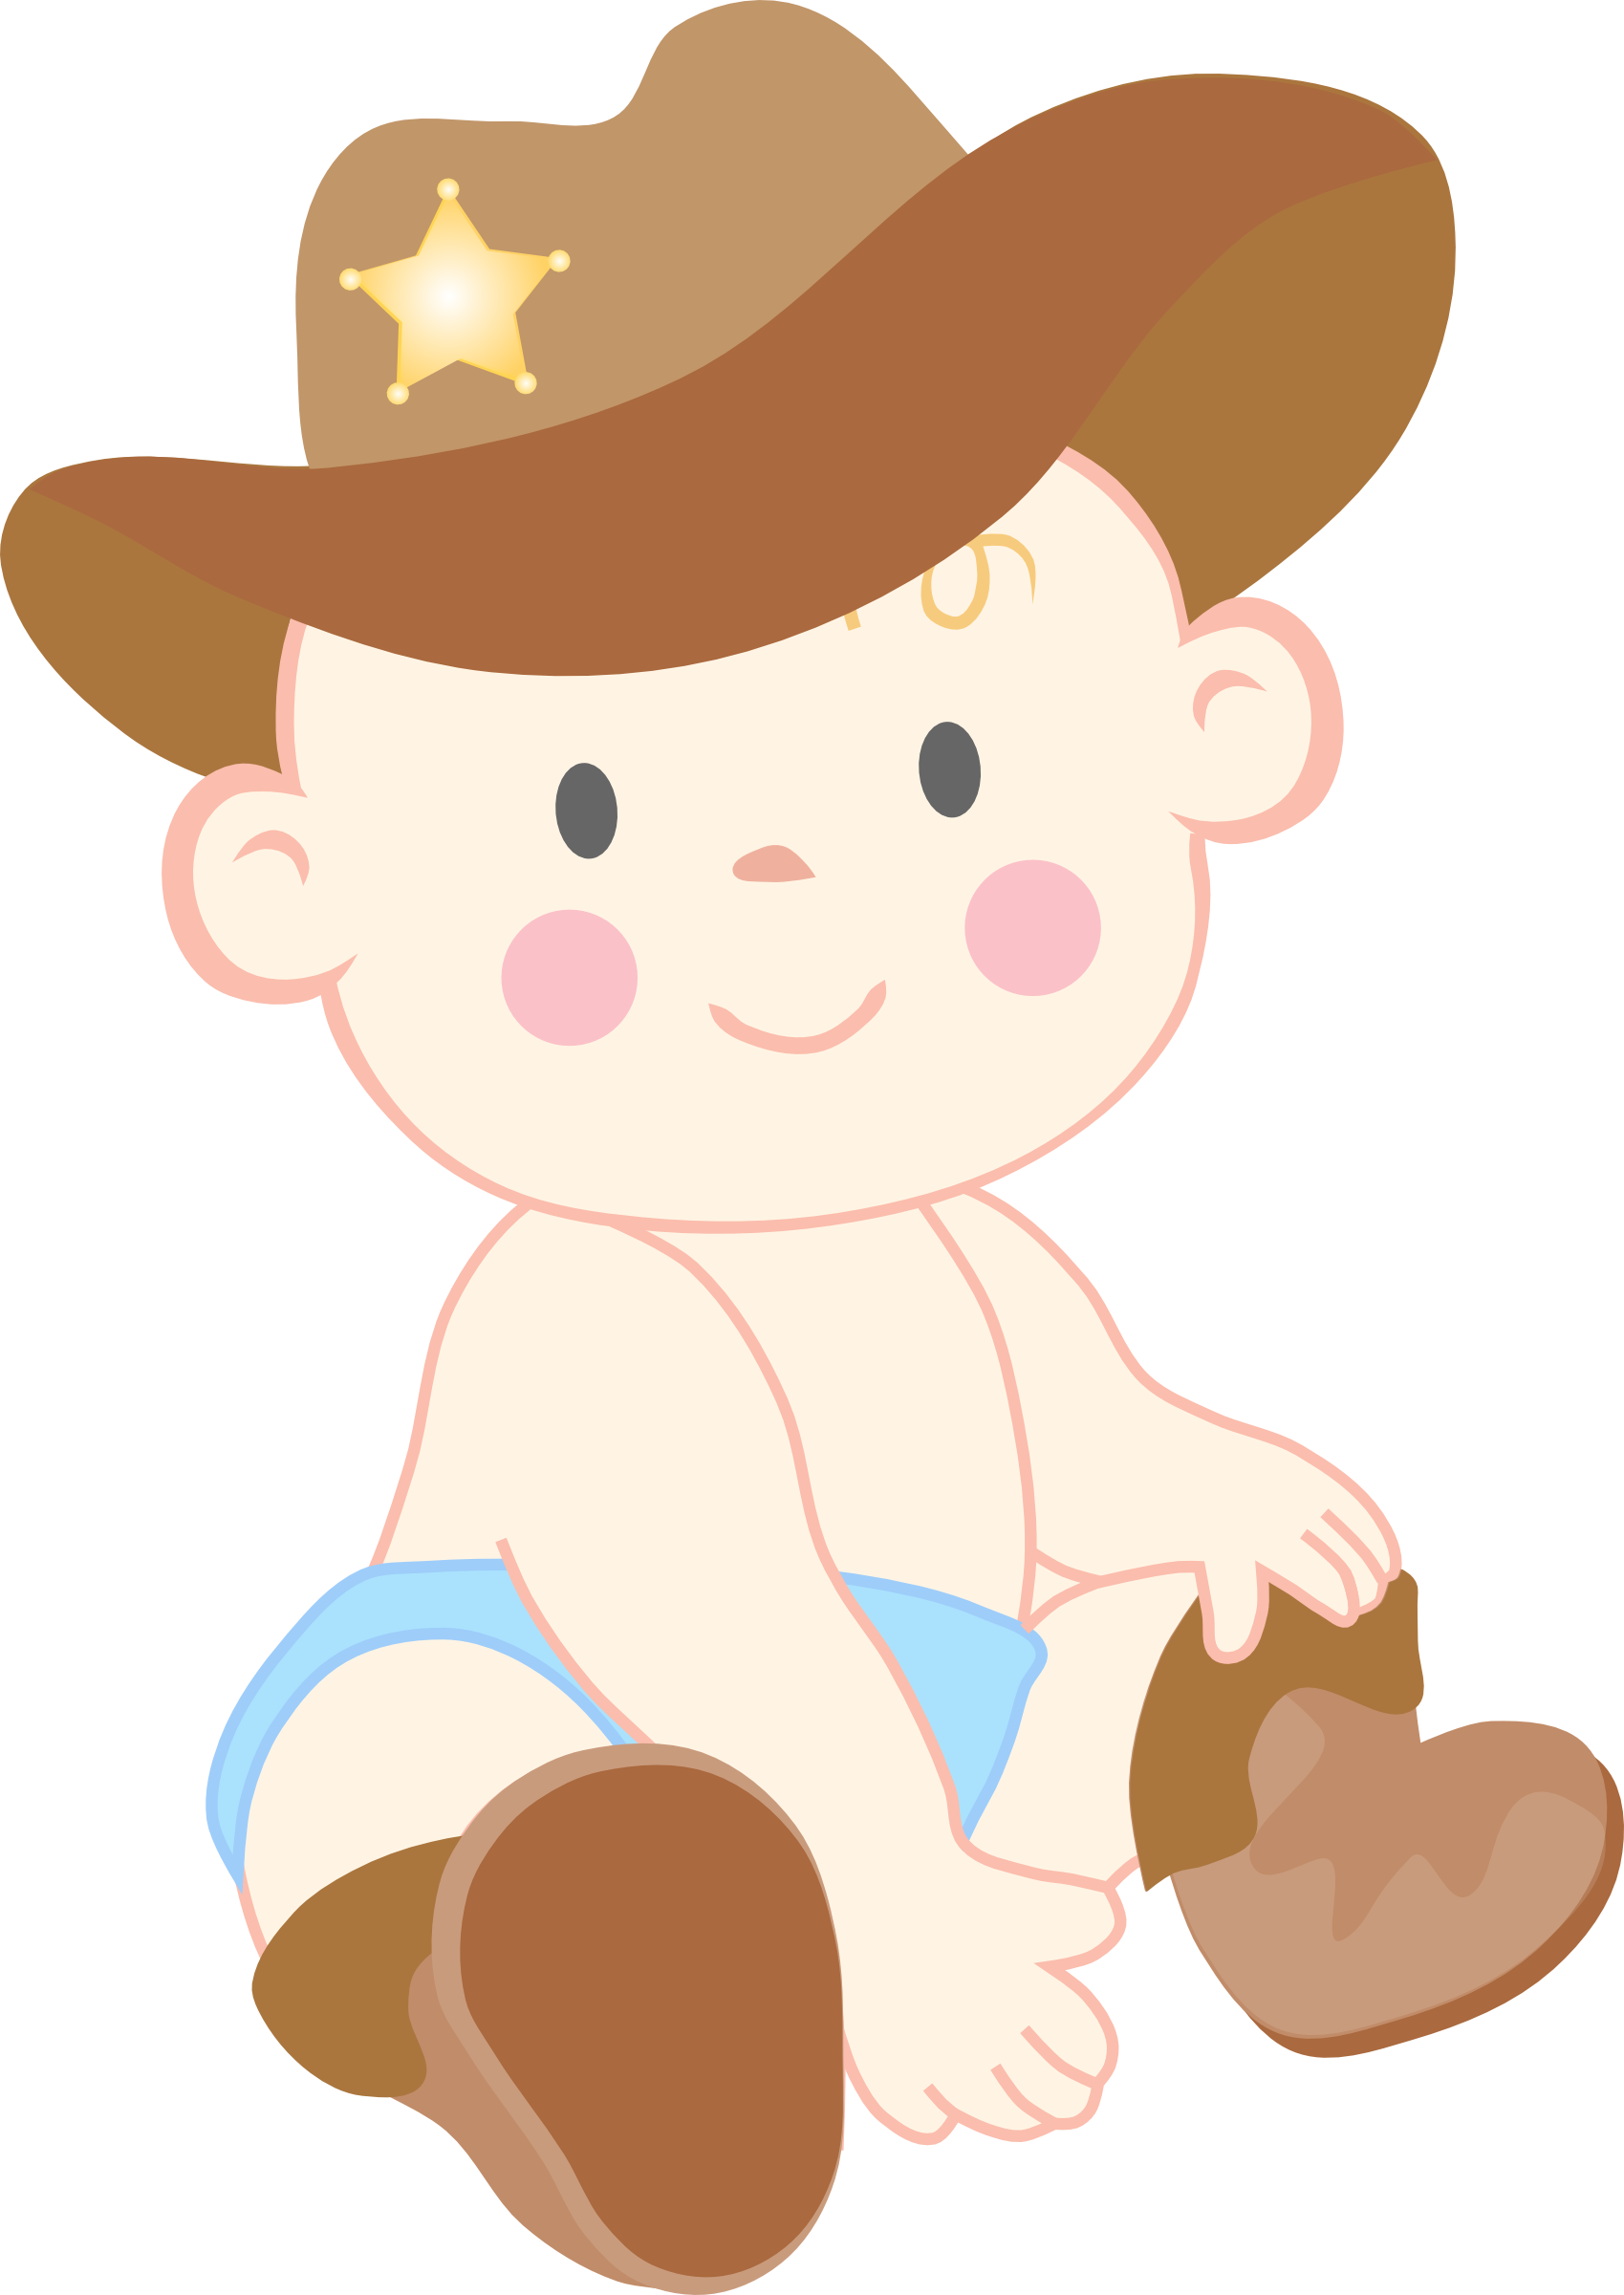 Showering clipart fun. Baby cowboy look at